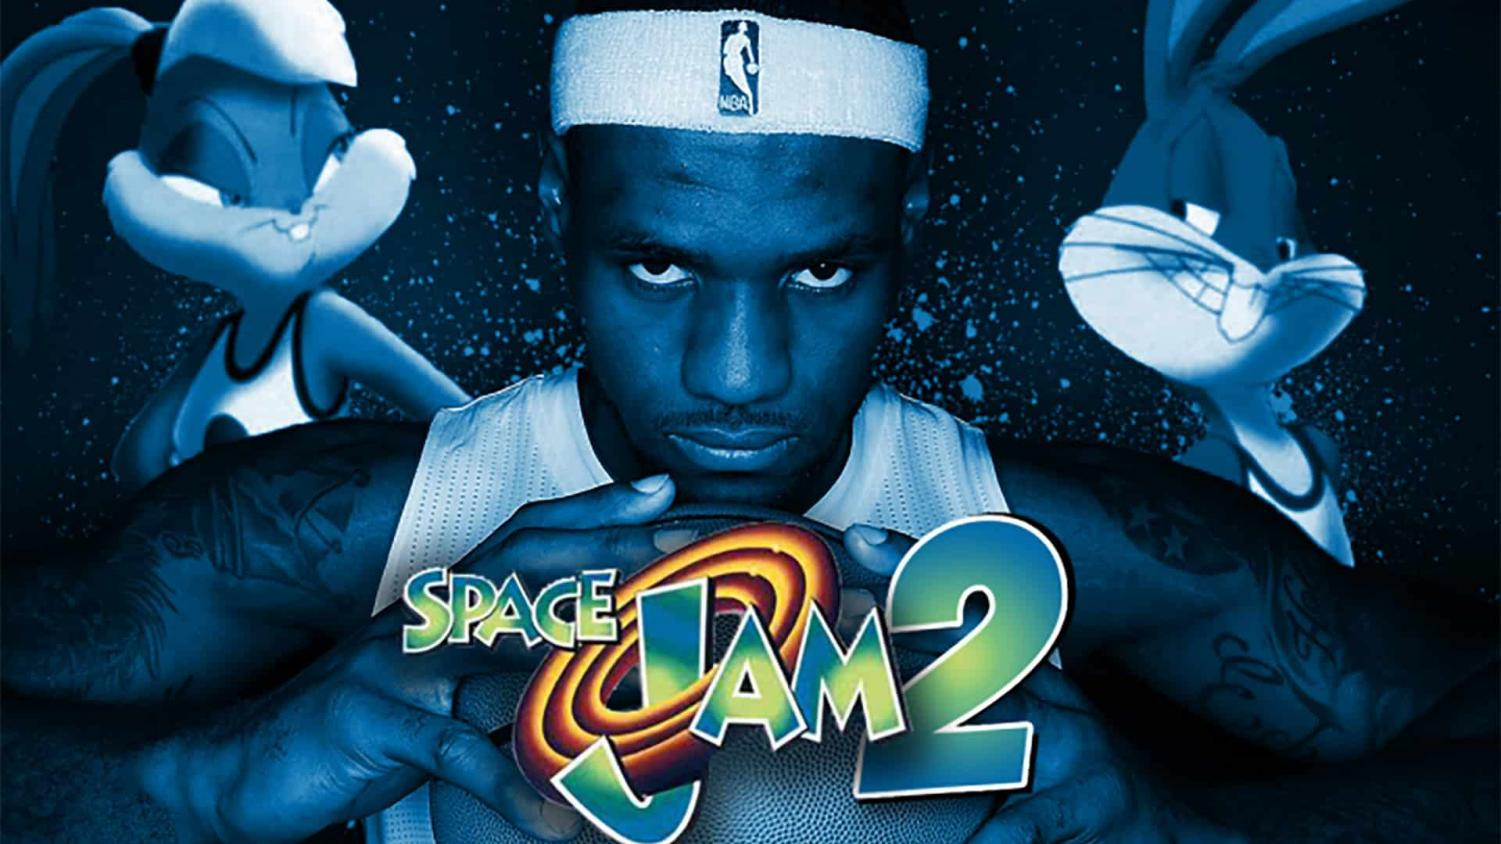 Space Jam 2 poster.